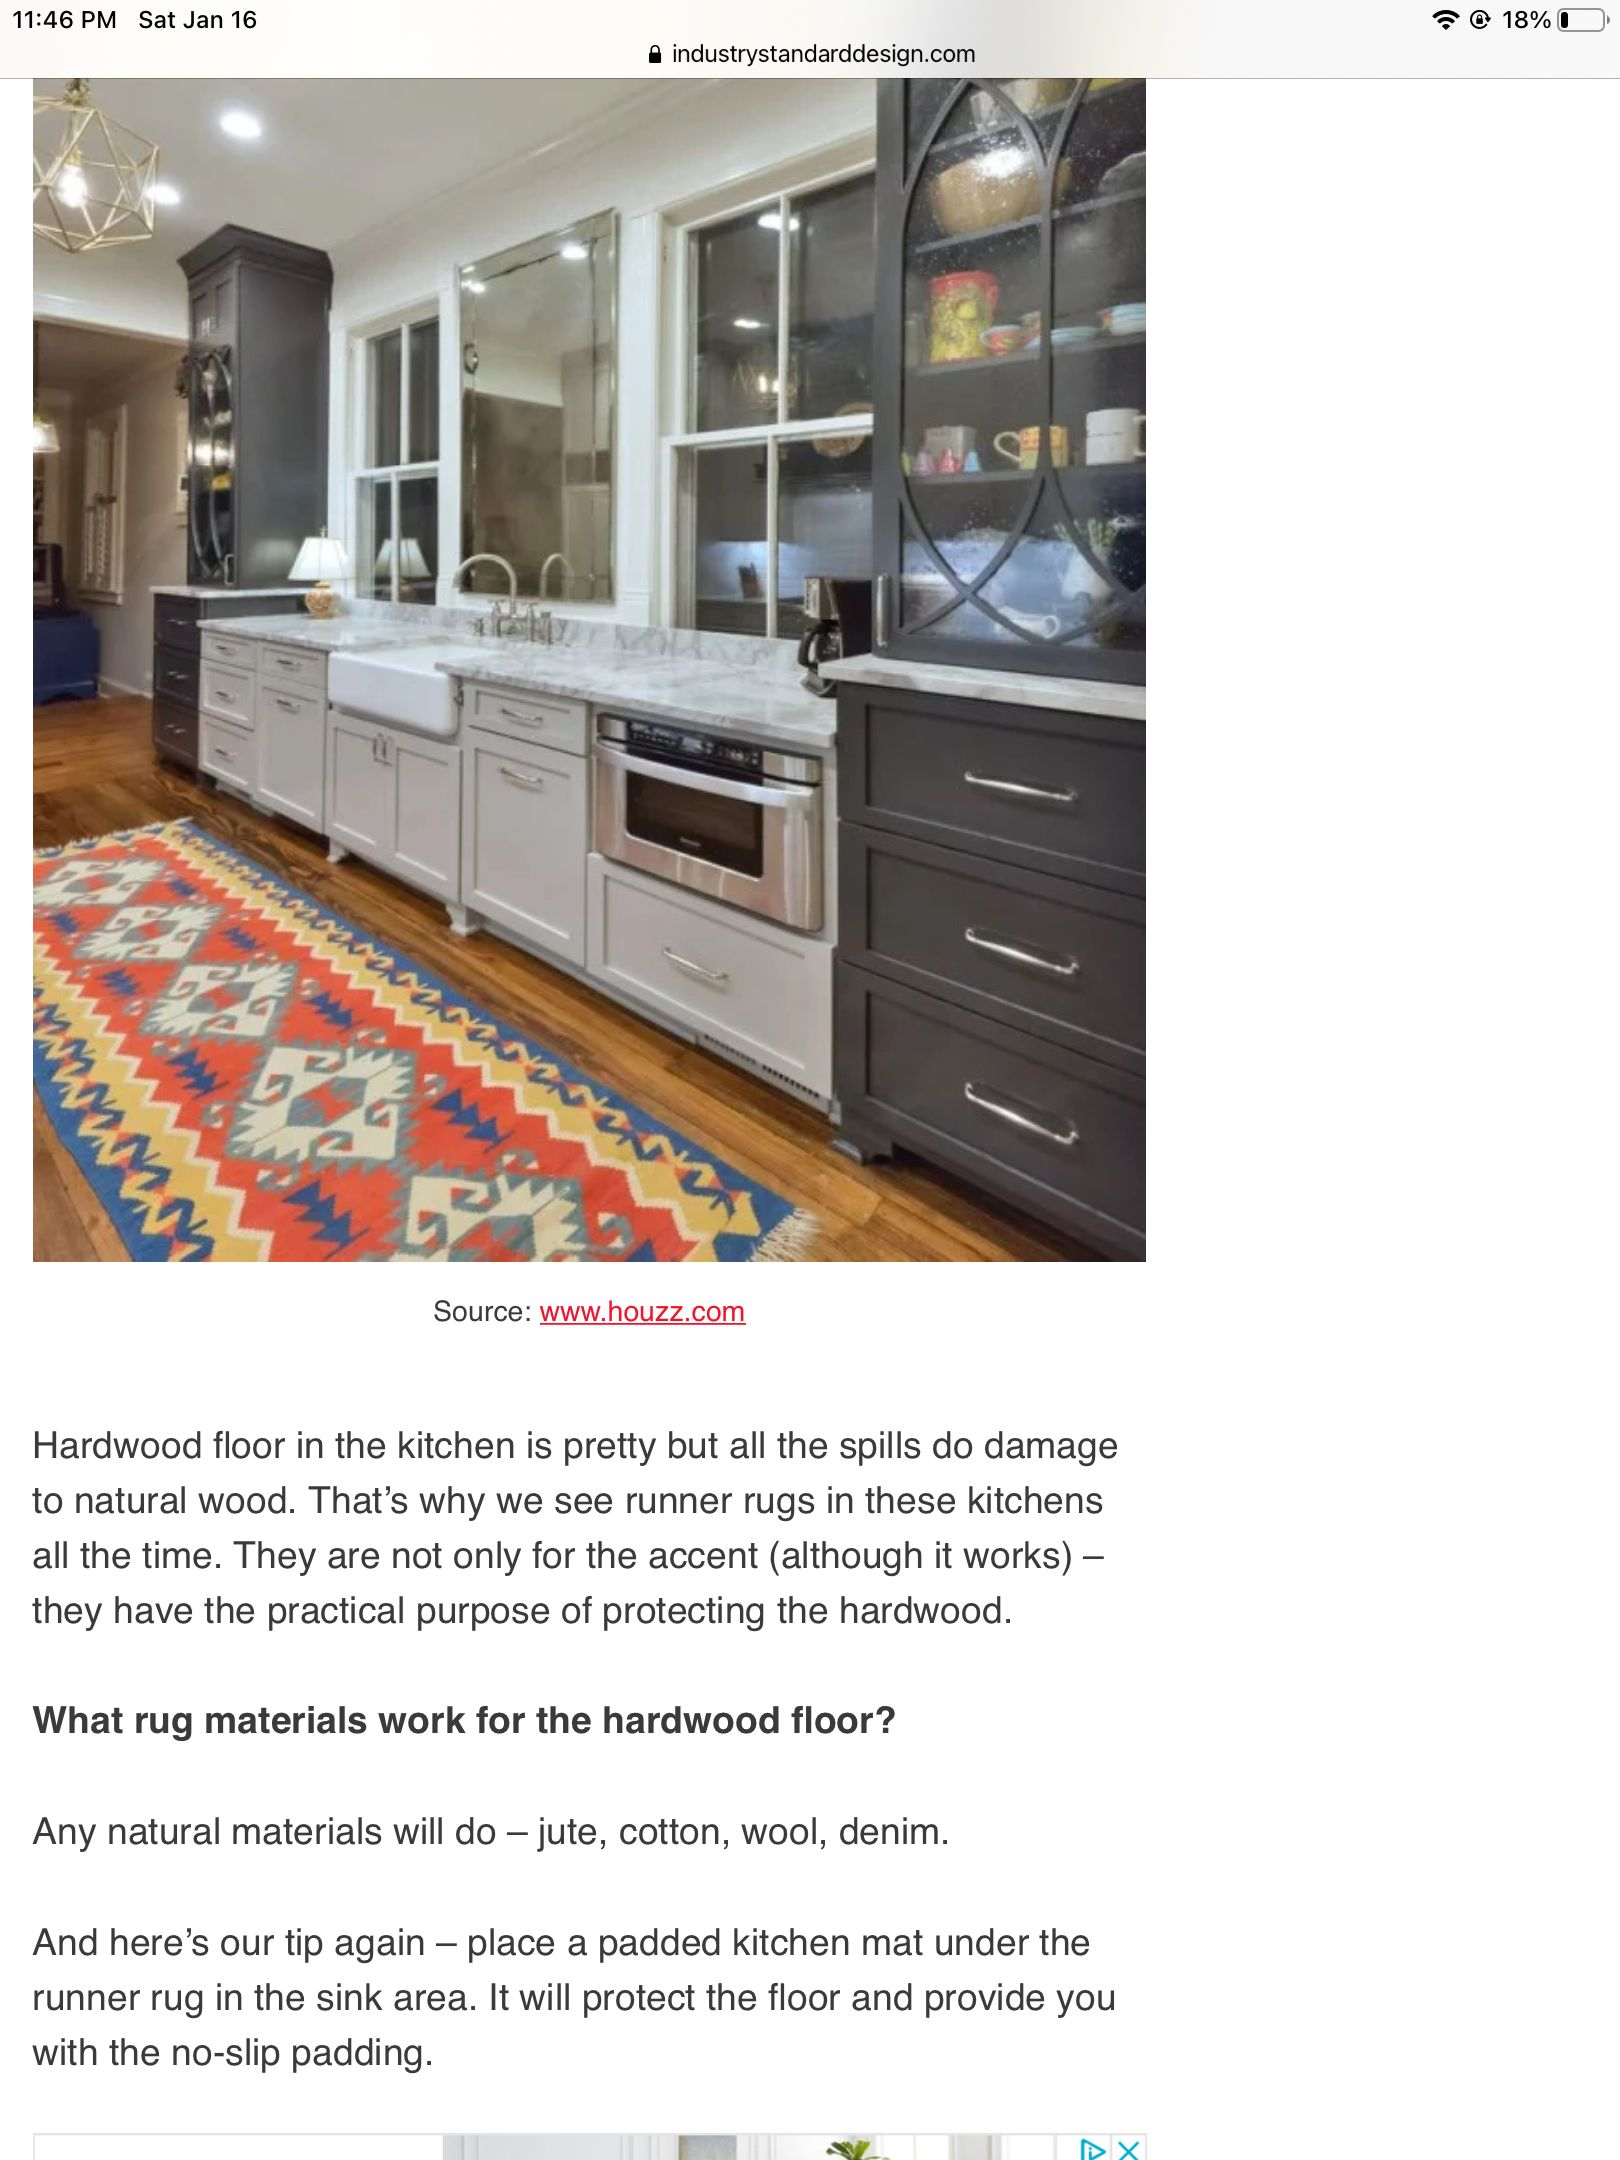 Pin By Teri Bentley On Rugs In 2021 Home Decor Kitchen Decor